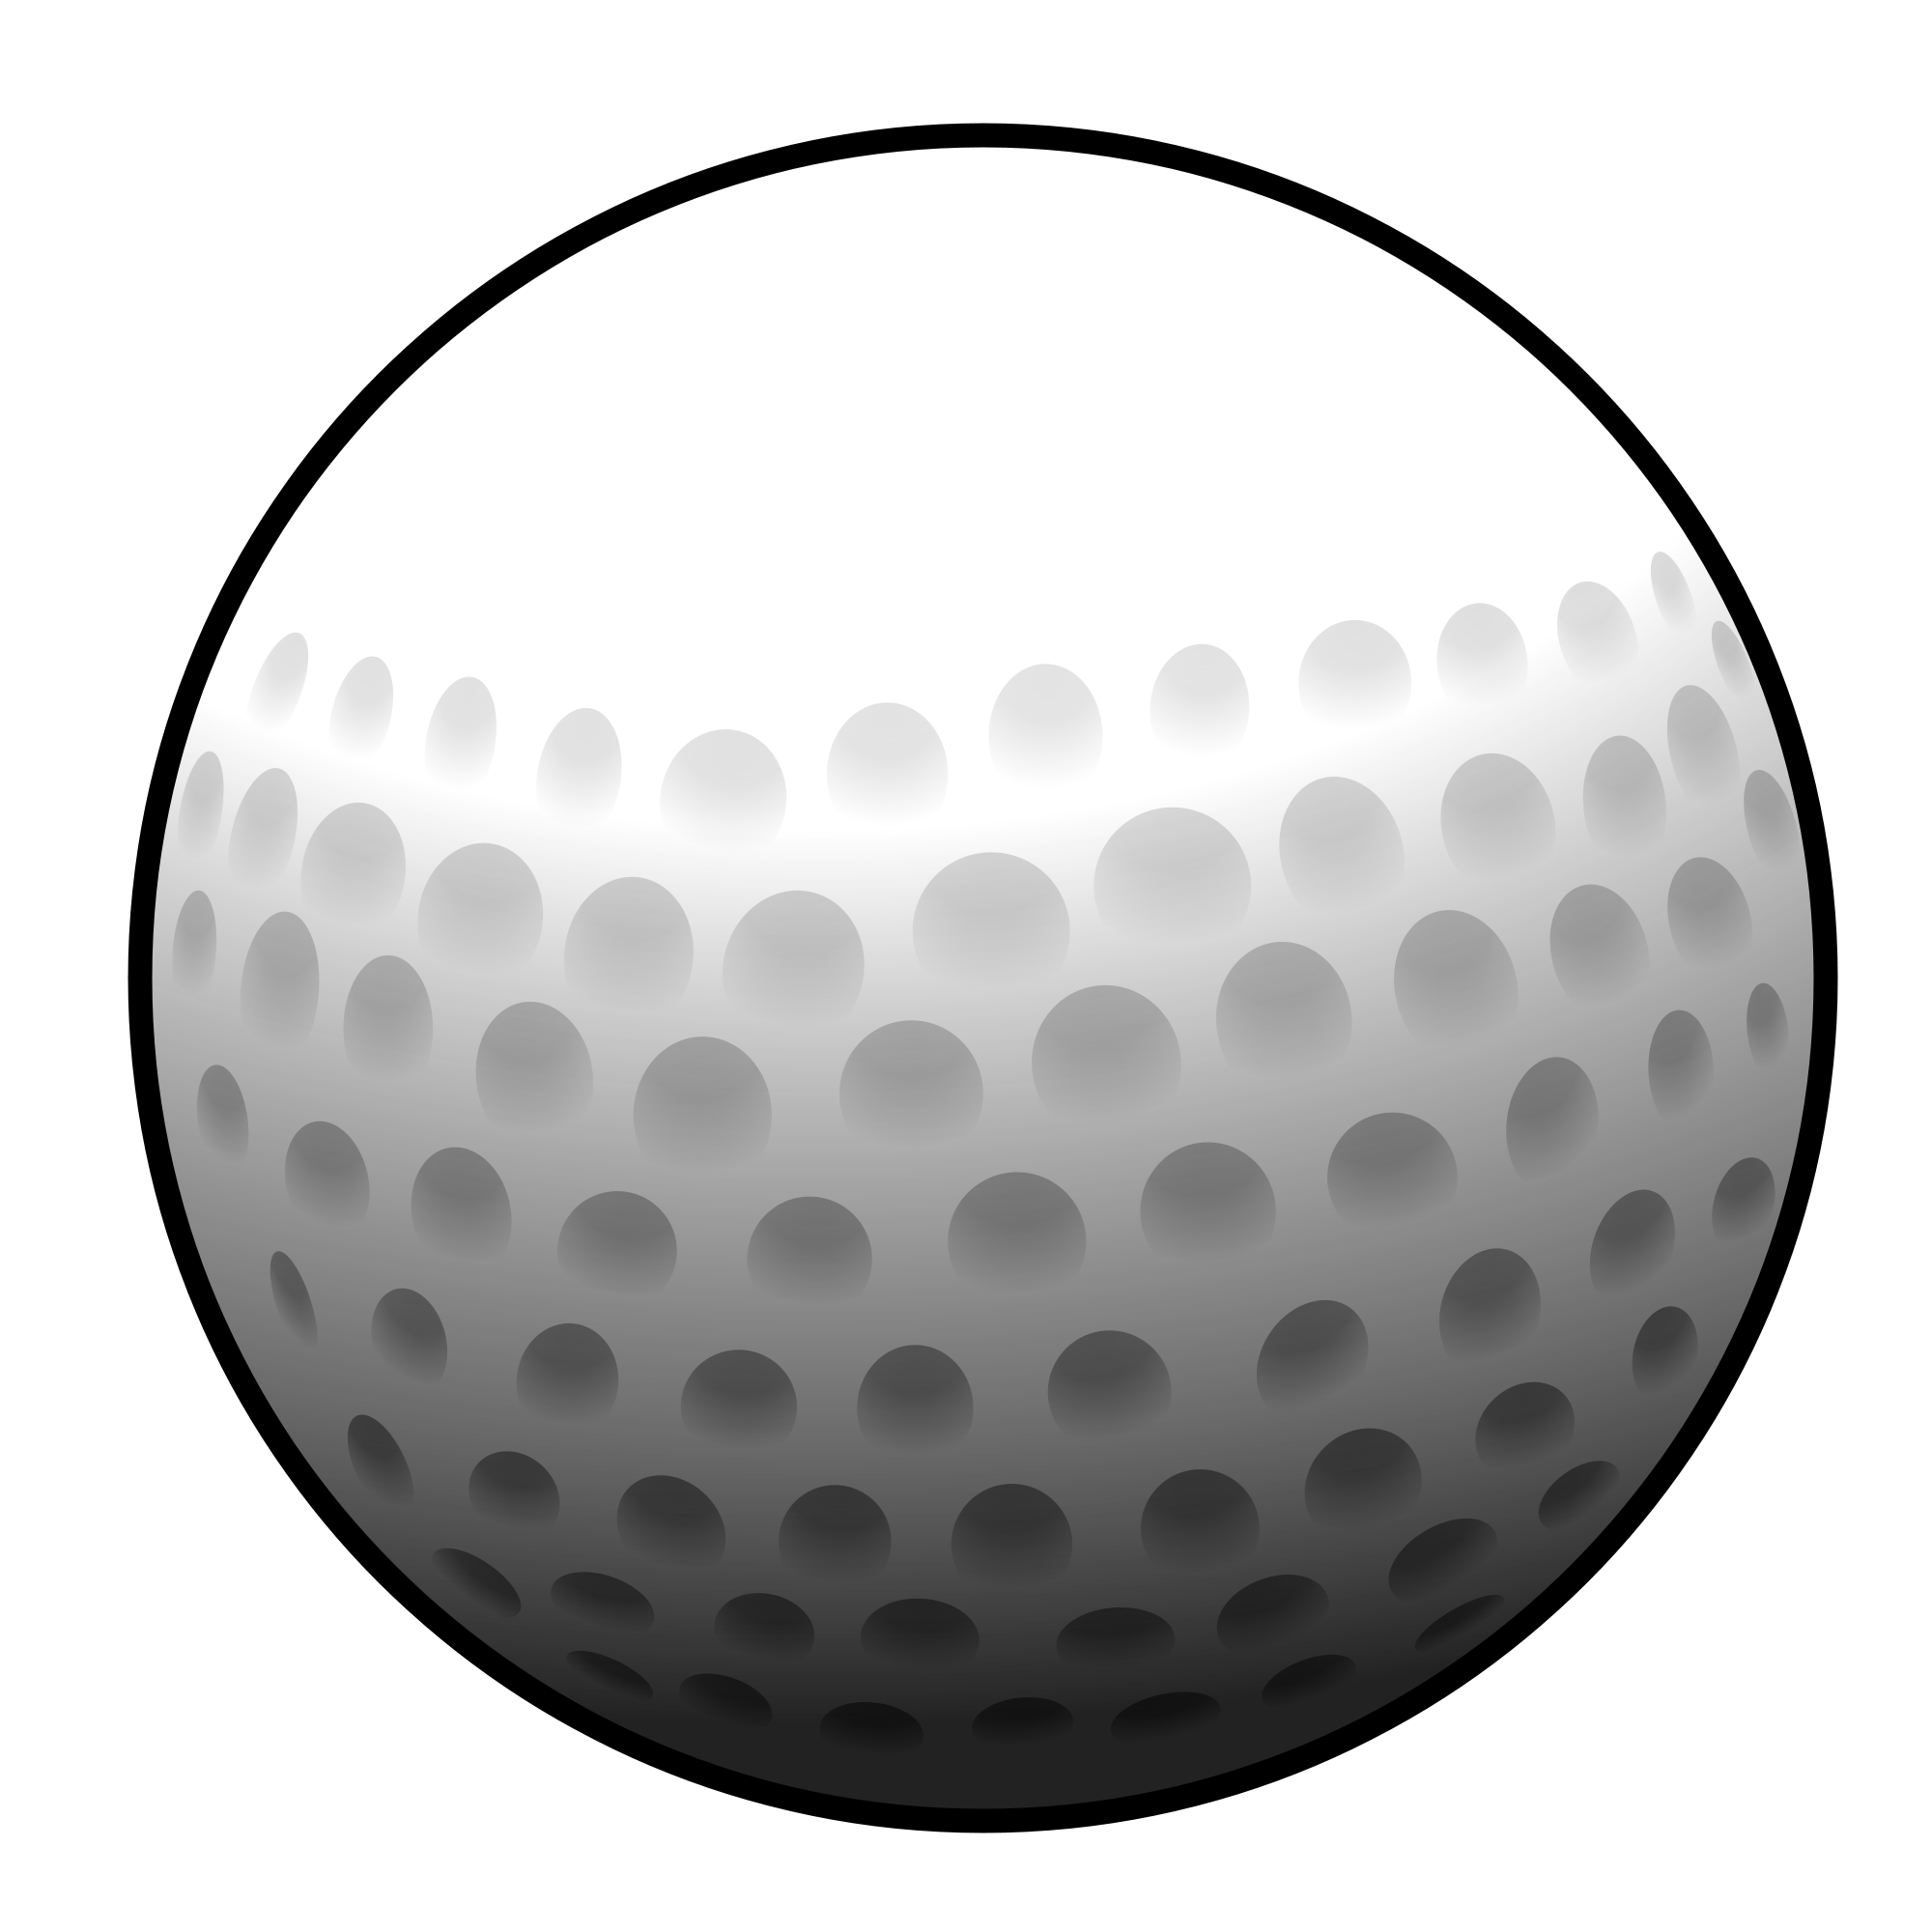 clip art free golf ball clipart no background #57236702